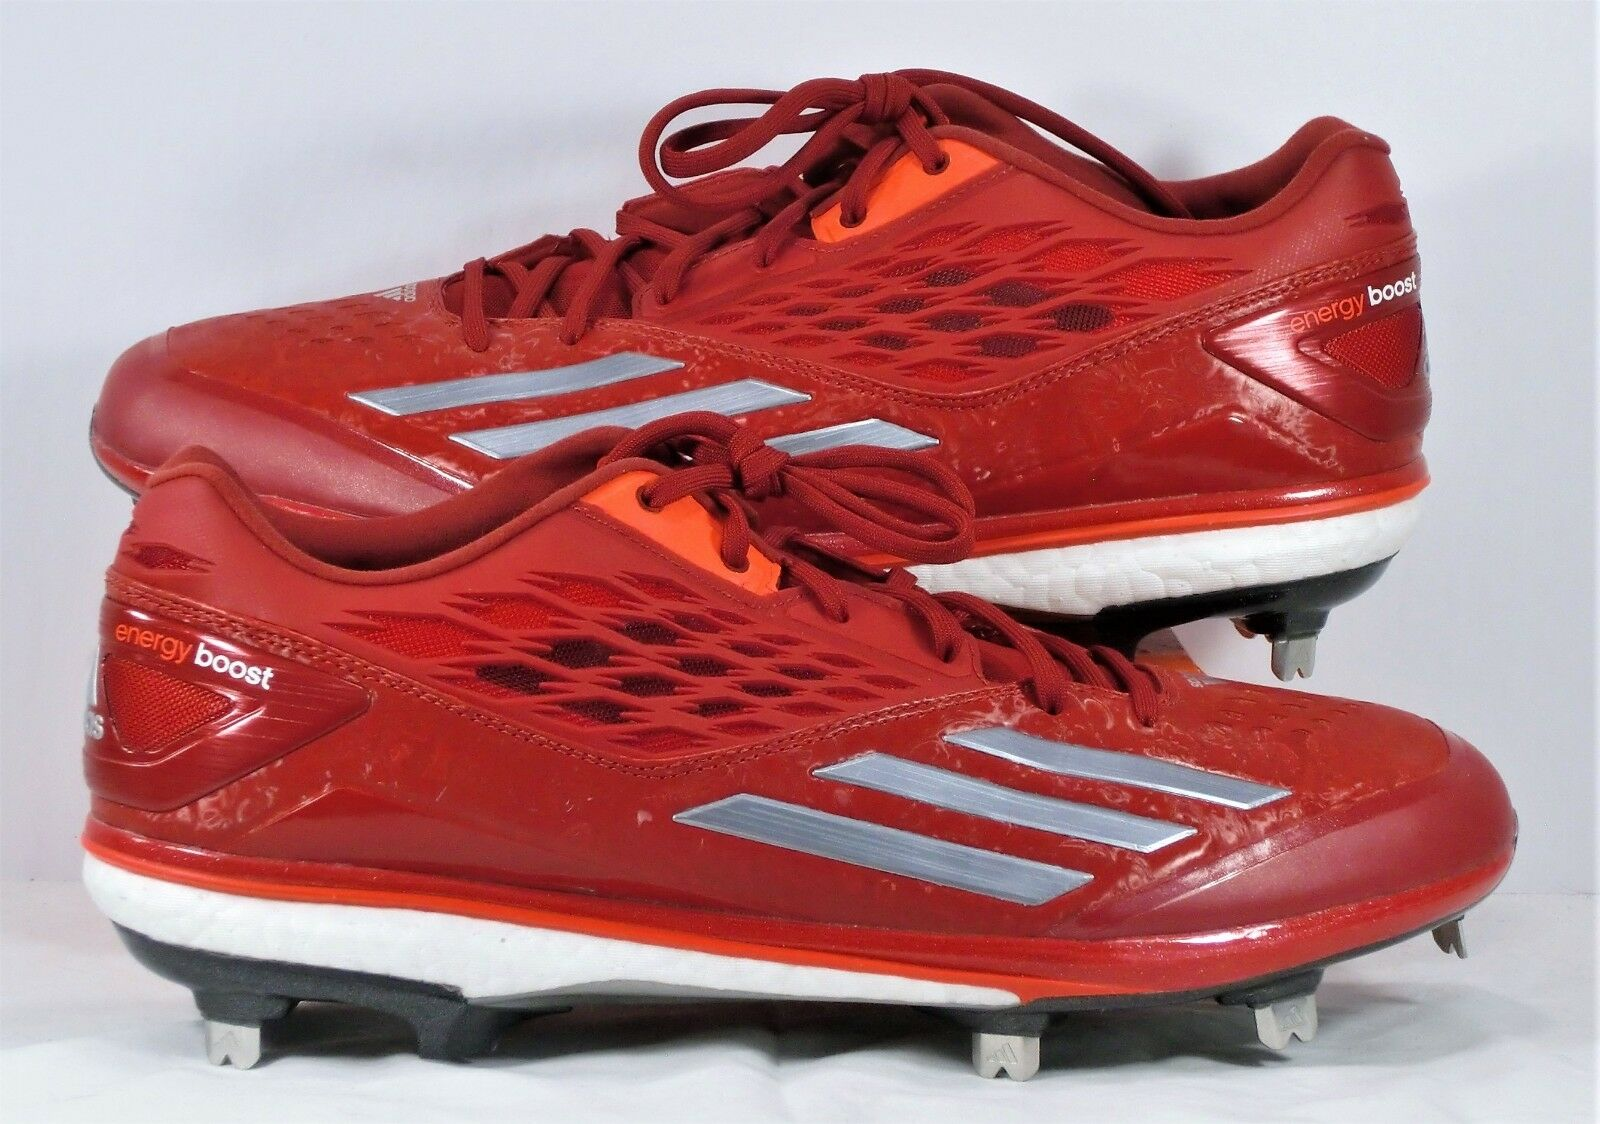 b9276ac8106 Adidas Energy Boost Icon Red   White Baseball Cleat Sz 12 NEW D74251 ...